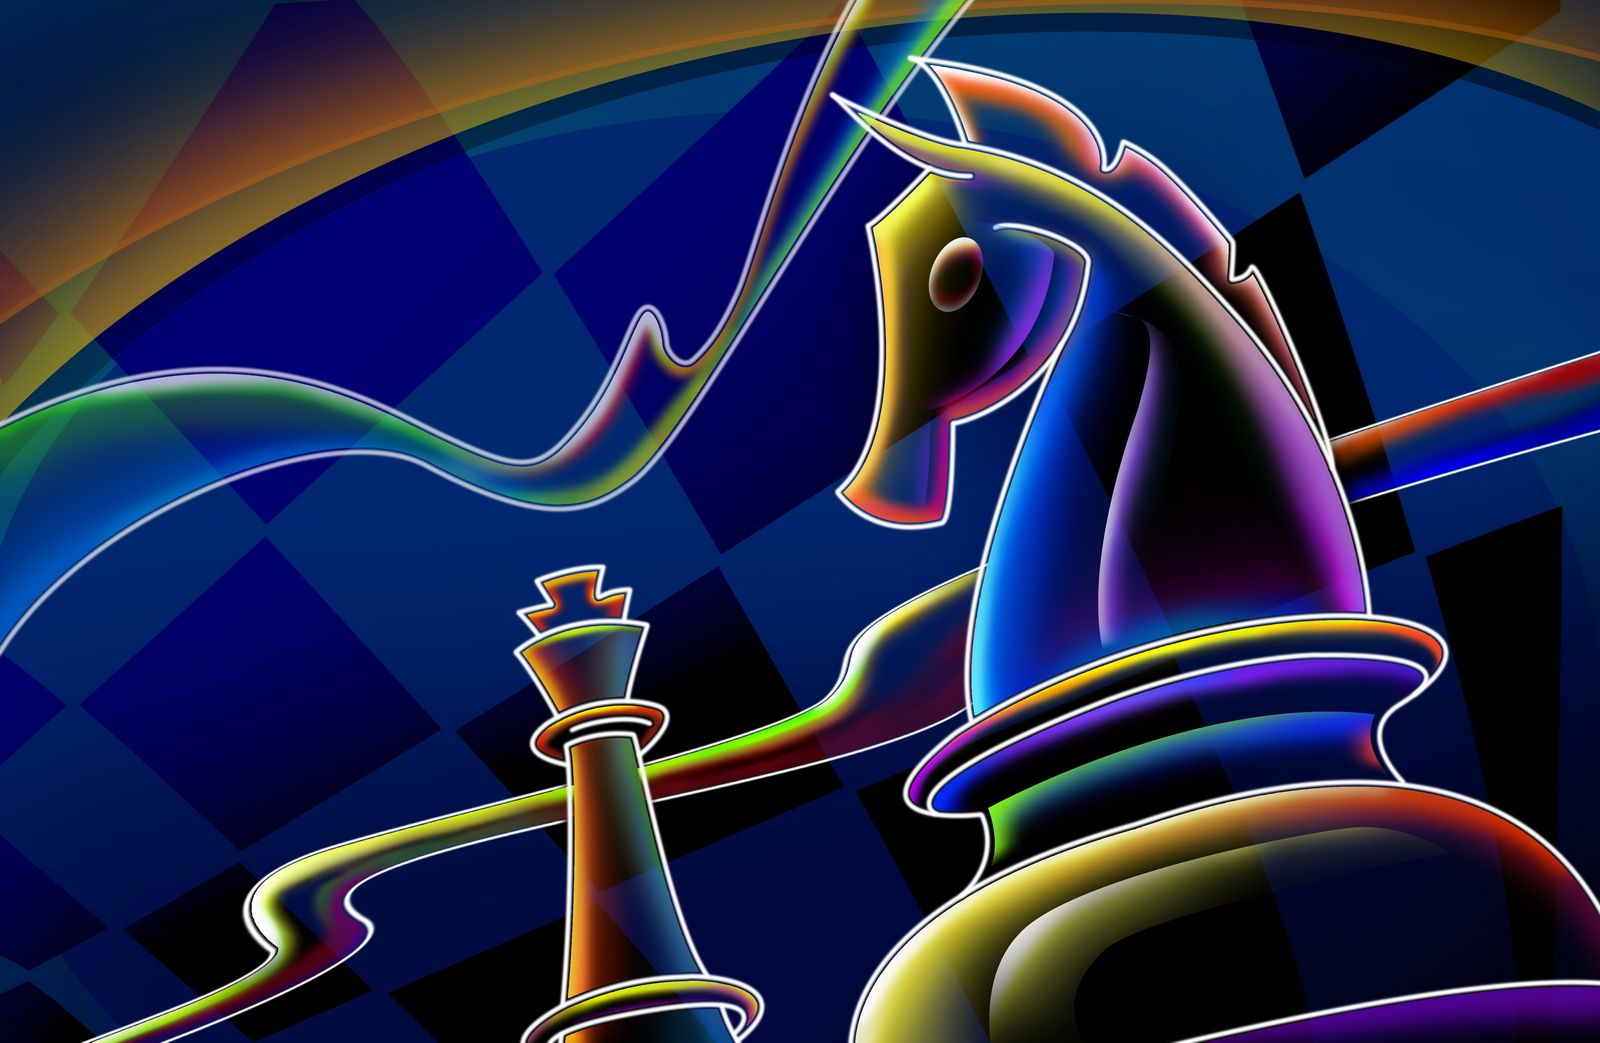 Chess desert images Neon Chess, 3D, 3D and CG, Chess